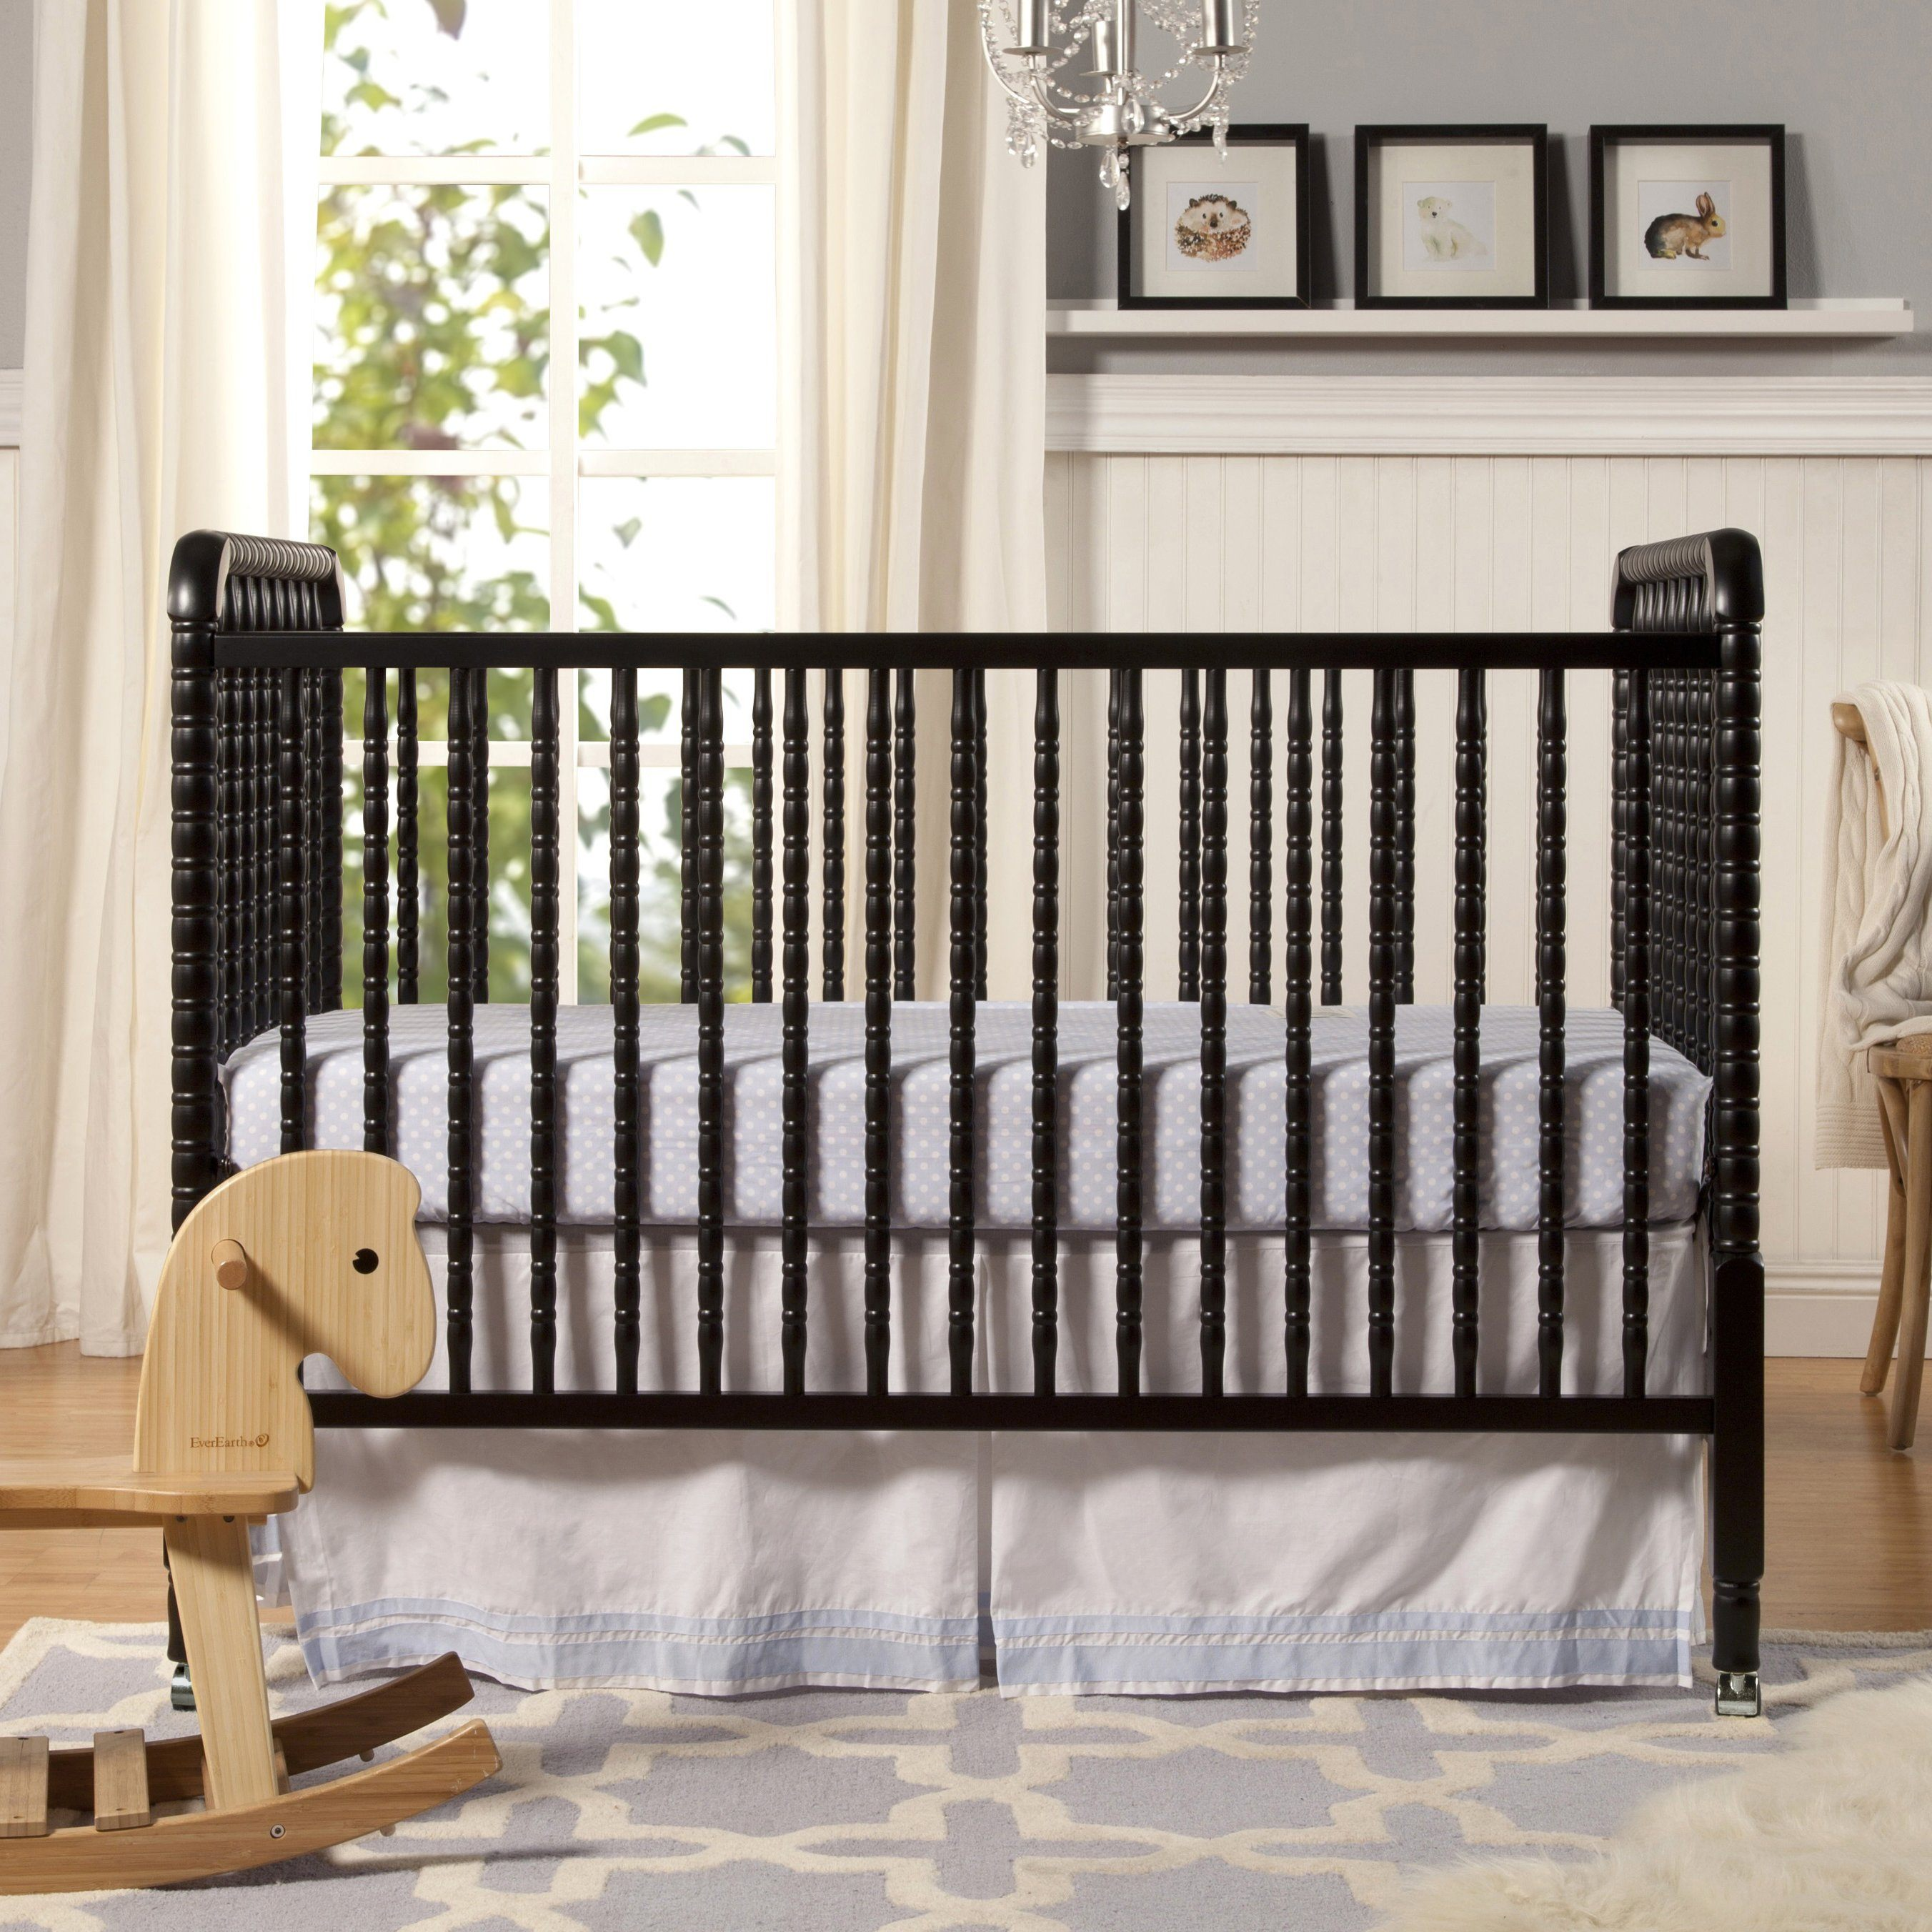 Jenny Lind Crib - Project Nursery